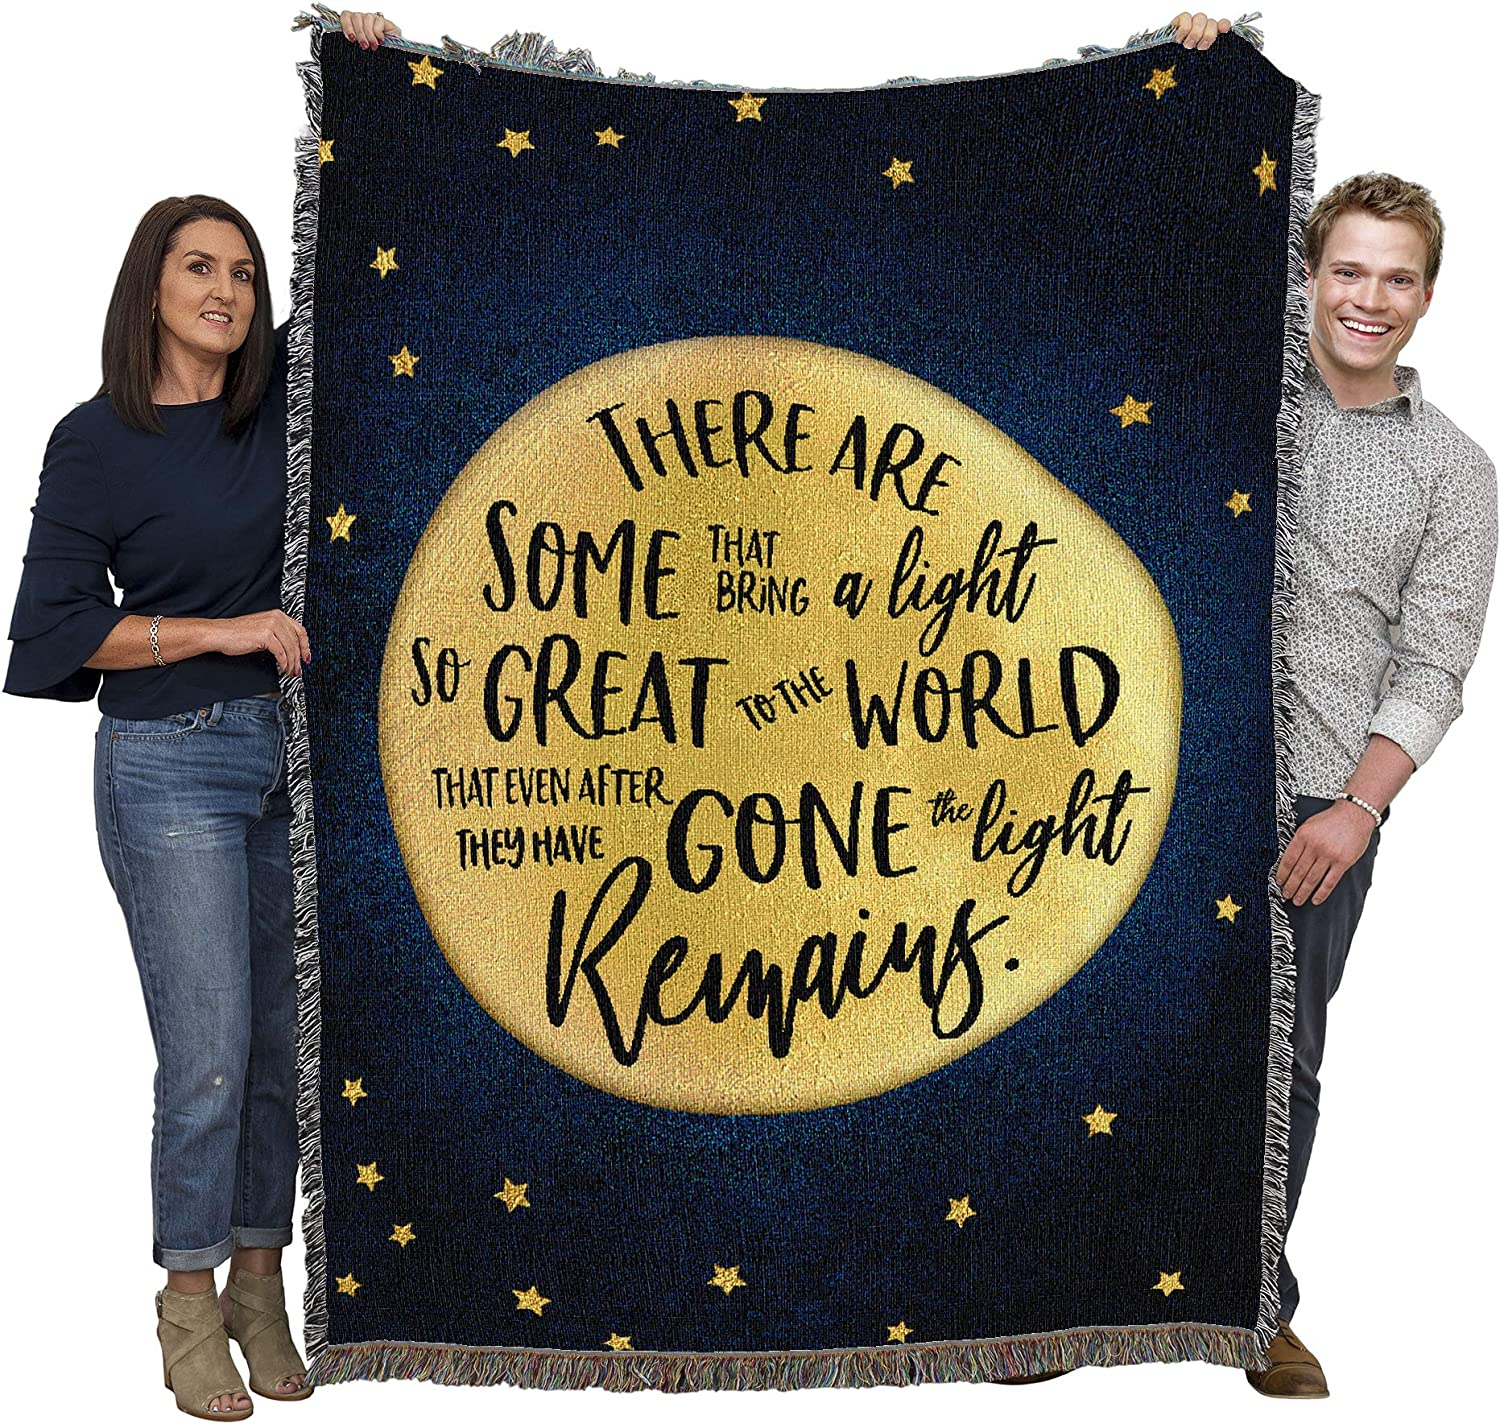 Pure Country Weavers A True Light - Sympathy Blanket Throw Woven from Cotton - Made in The USA (72x54)